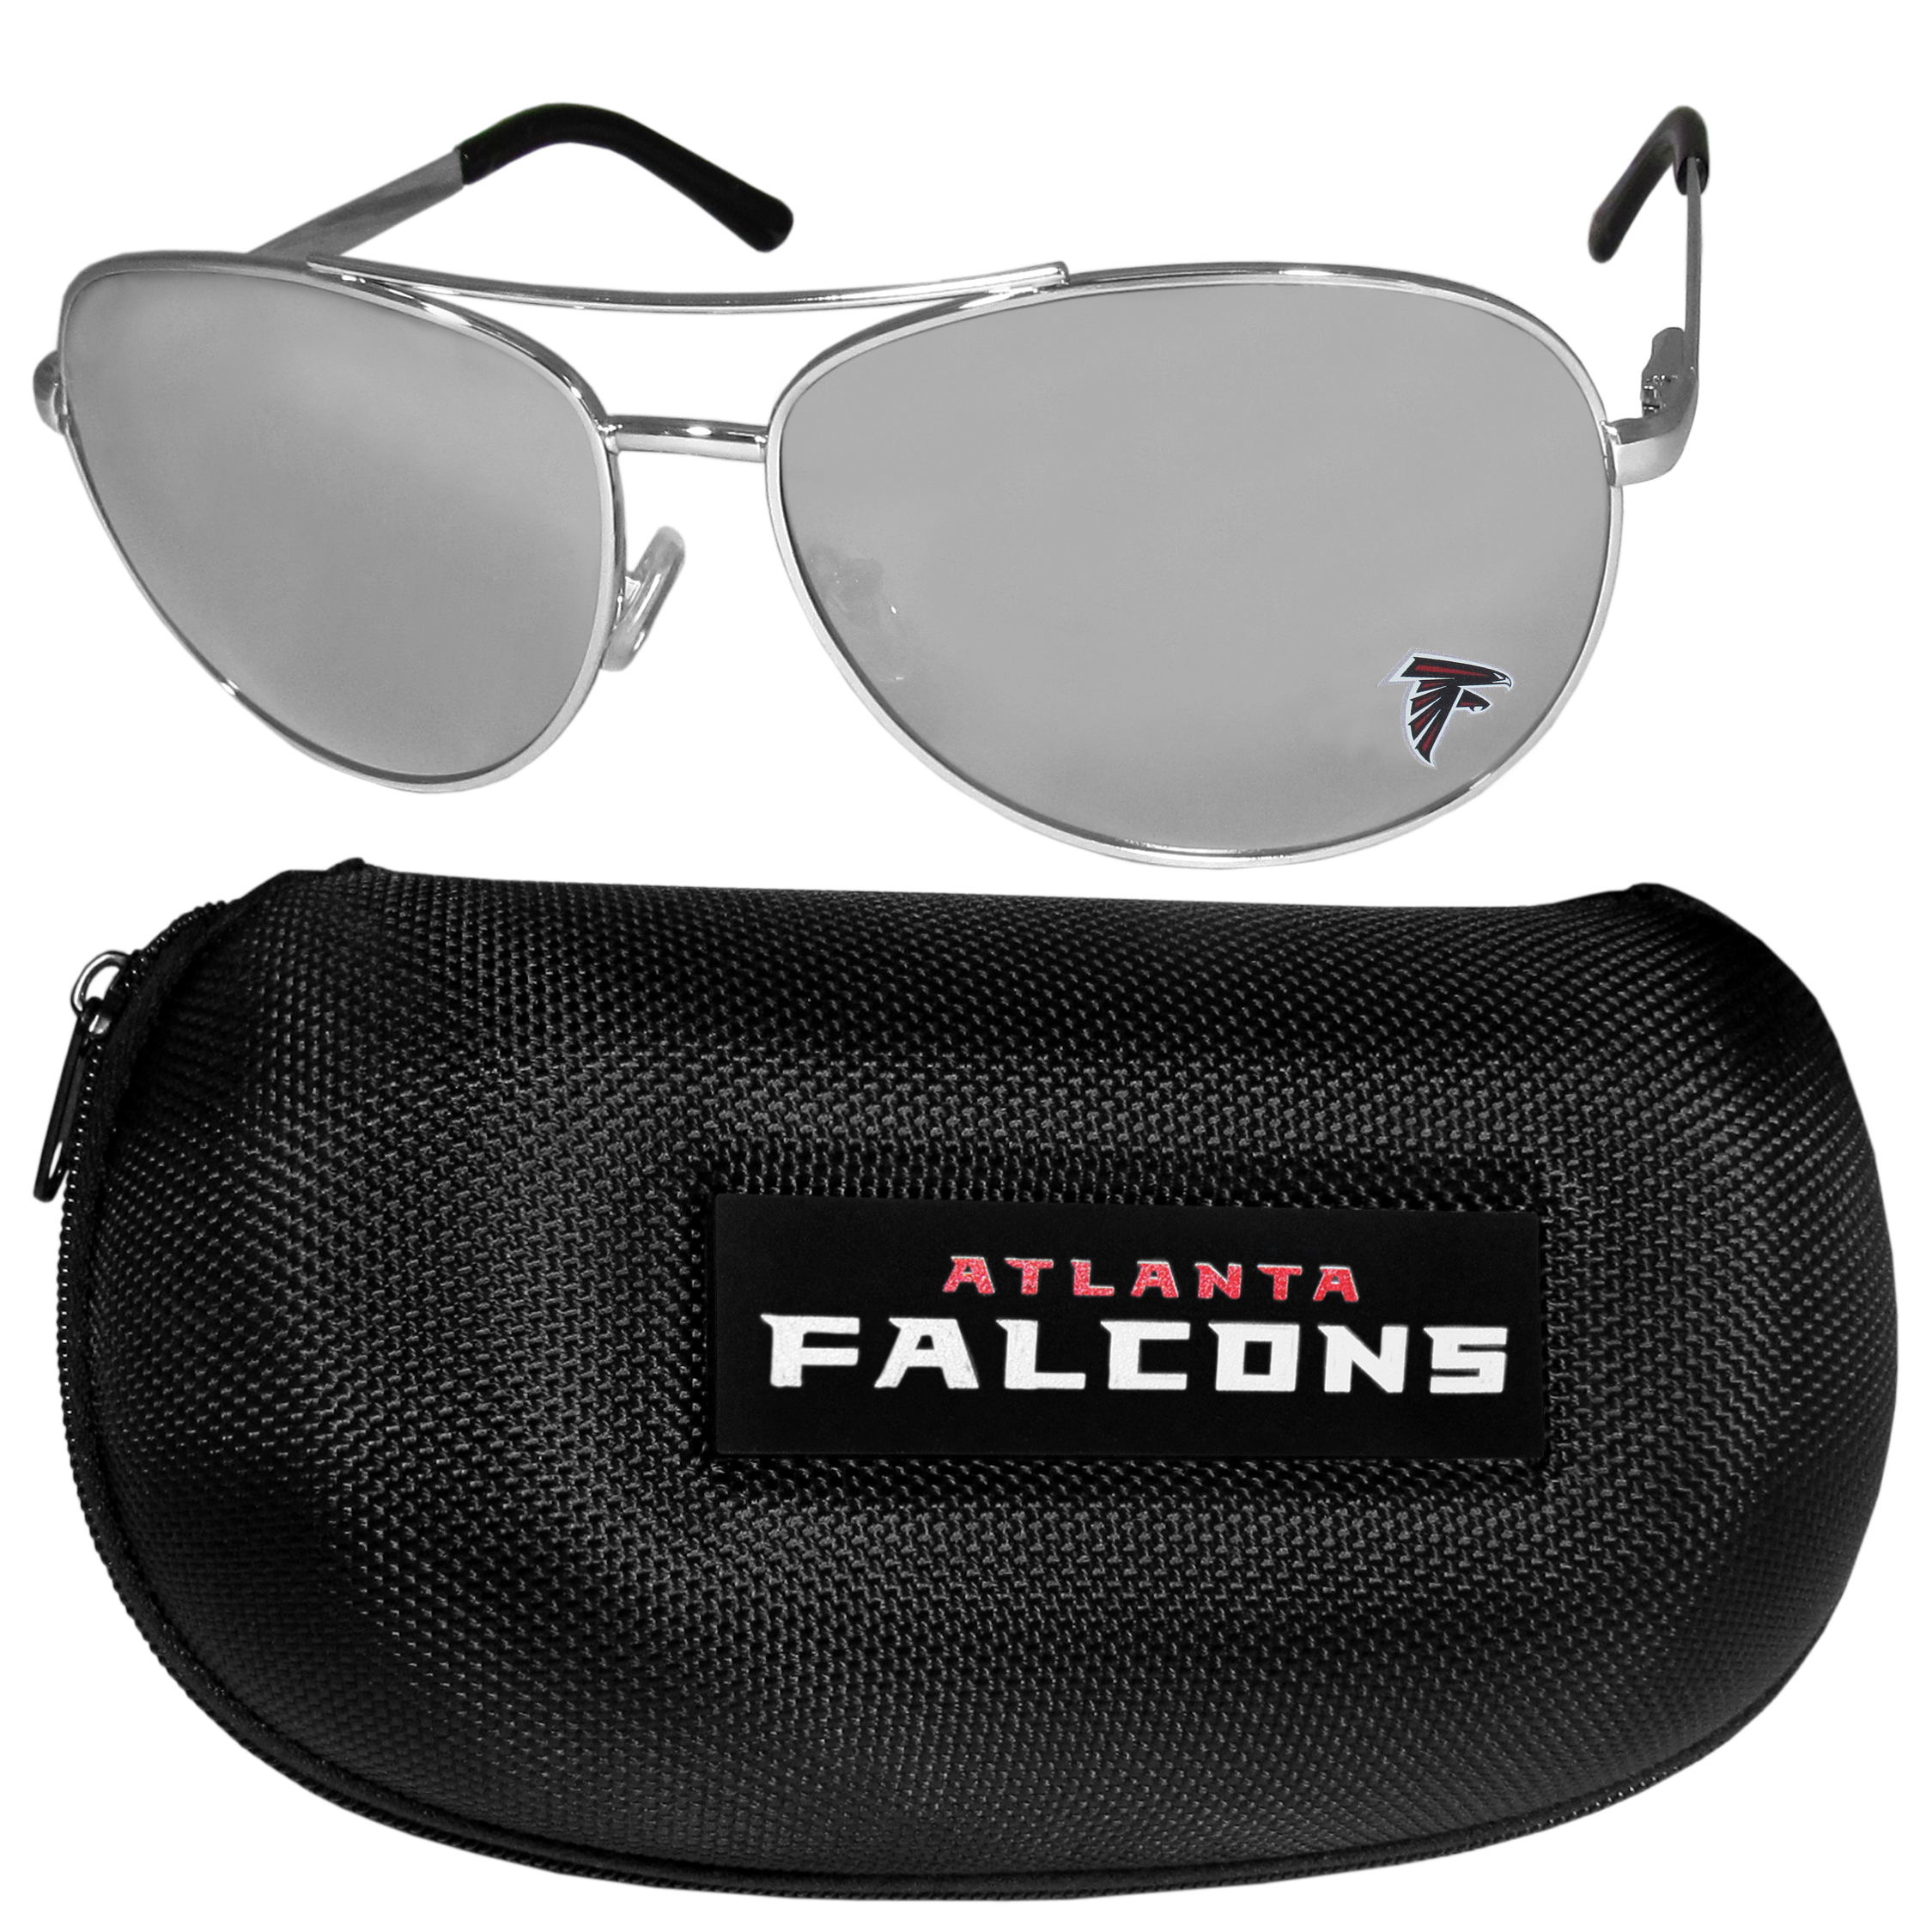 Atlanta Falcons Aviator Sunglasses and Zippered Carrying Case - Aviator sunglasses are truly an iconic retro fashion statement that never goes out-of-style. Our Atlanta Falcons  aviator sunglasses pair this classic look with your love of the game. The iridium coated lenses reduce glare while driving, boating, golfing and their 100% UVA/UVB rating provides you with the maximum UV protection for all your outdoor activities. A millennial favorite, these affordable designer frames are the perfect eyewear accessory for a sports fan that is looking for high-quality at an affordable price. The durable, flex hinged frames are tough enough for hiking and camping or if you prefer sun bathing by the pool or on the beach these shades will really stand the test of time. The sunglasses come with a hard shell zippered case which has a large team logo on the lid that will make even the most die-hard fan proud!